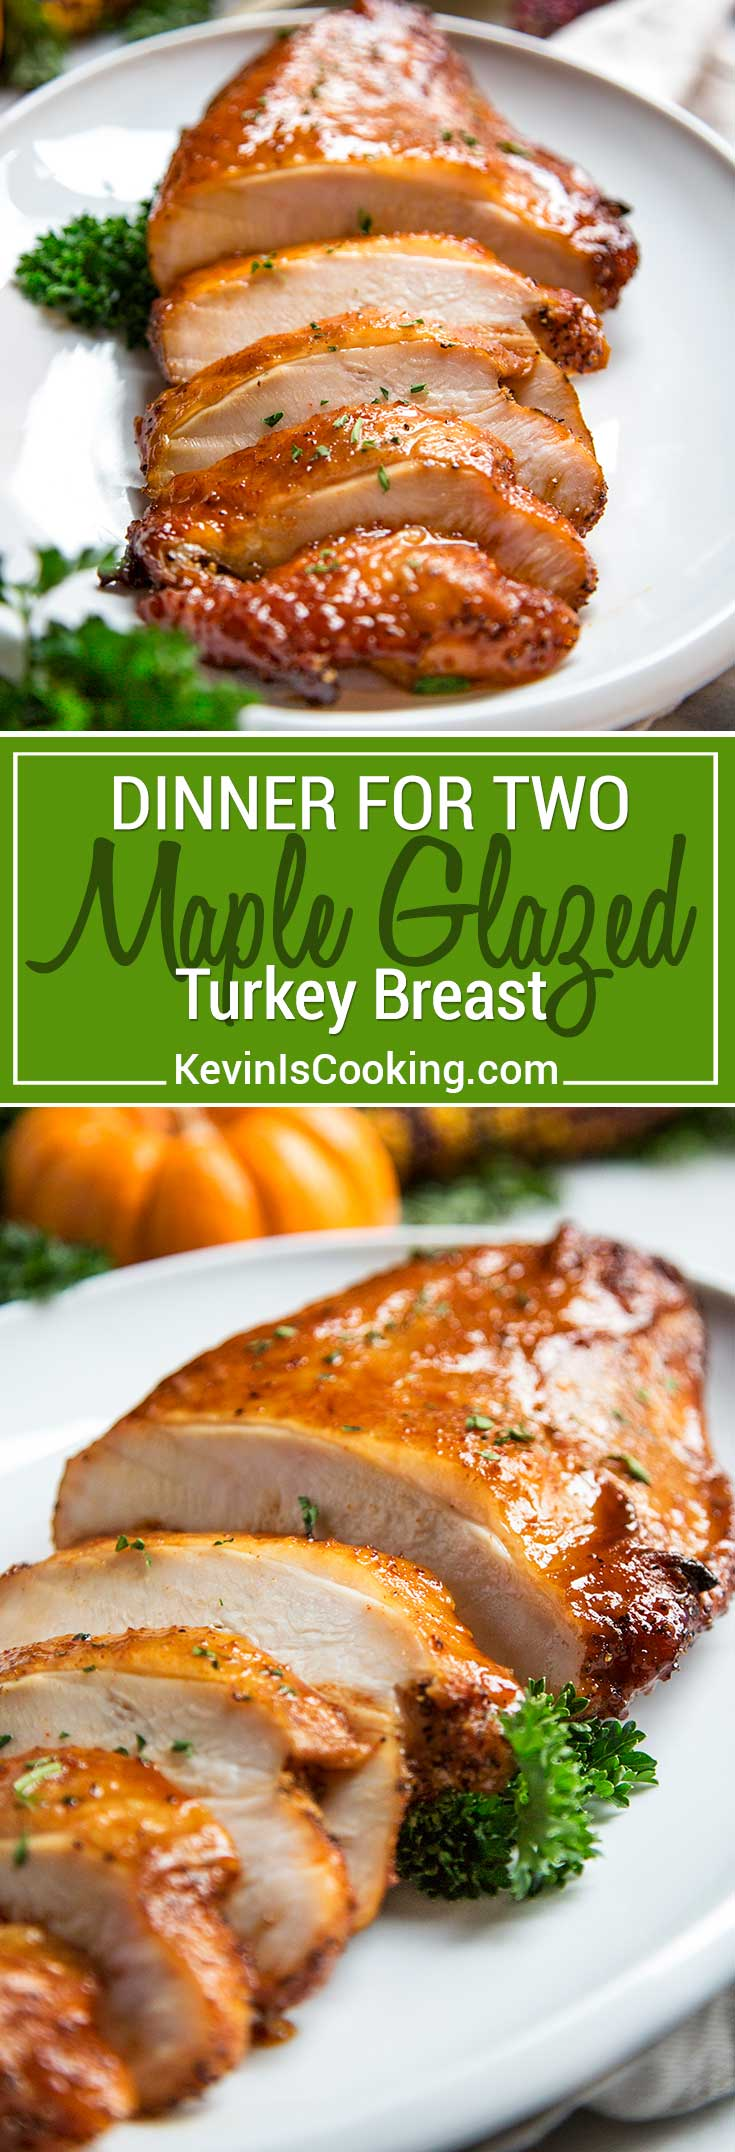 Dry brined for 12 hours with spices, roasted and basted with a maple, brown sugar, Sriracha  sauce, this Brown Sugar Maple Glazed Turkey breast is a tasty meal for two!